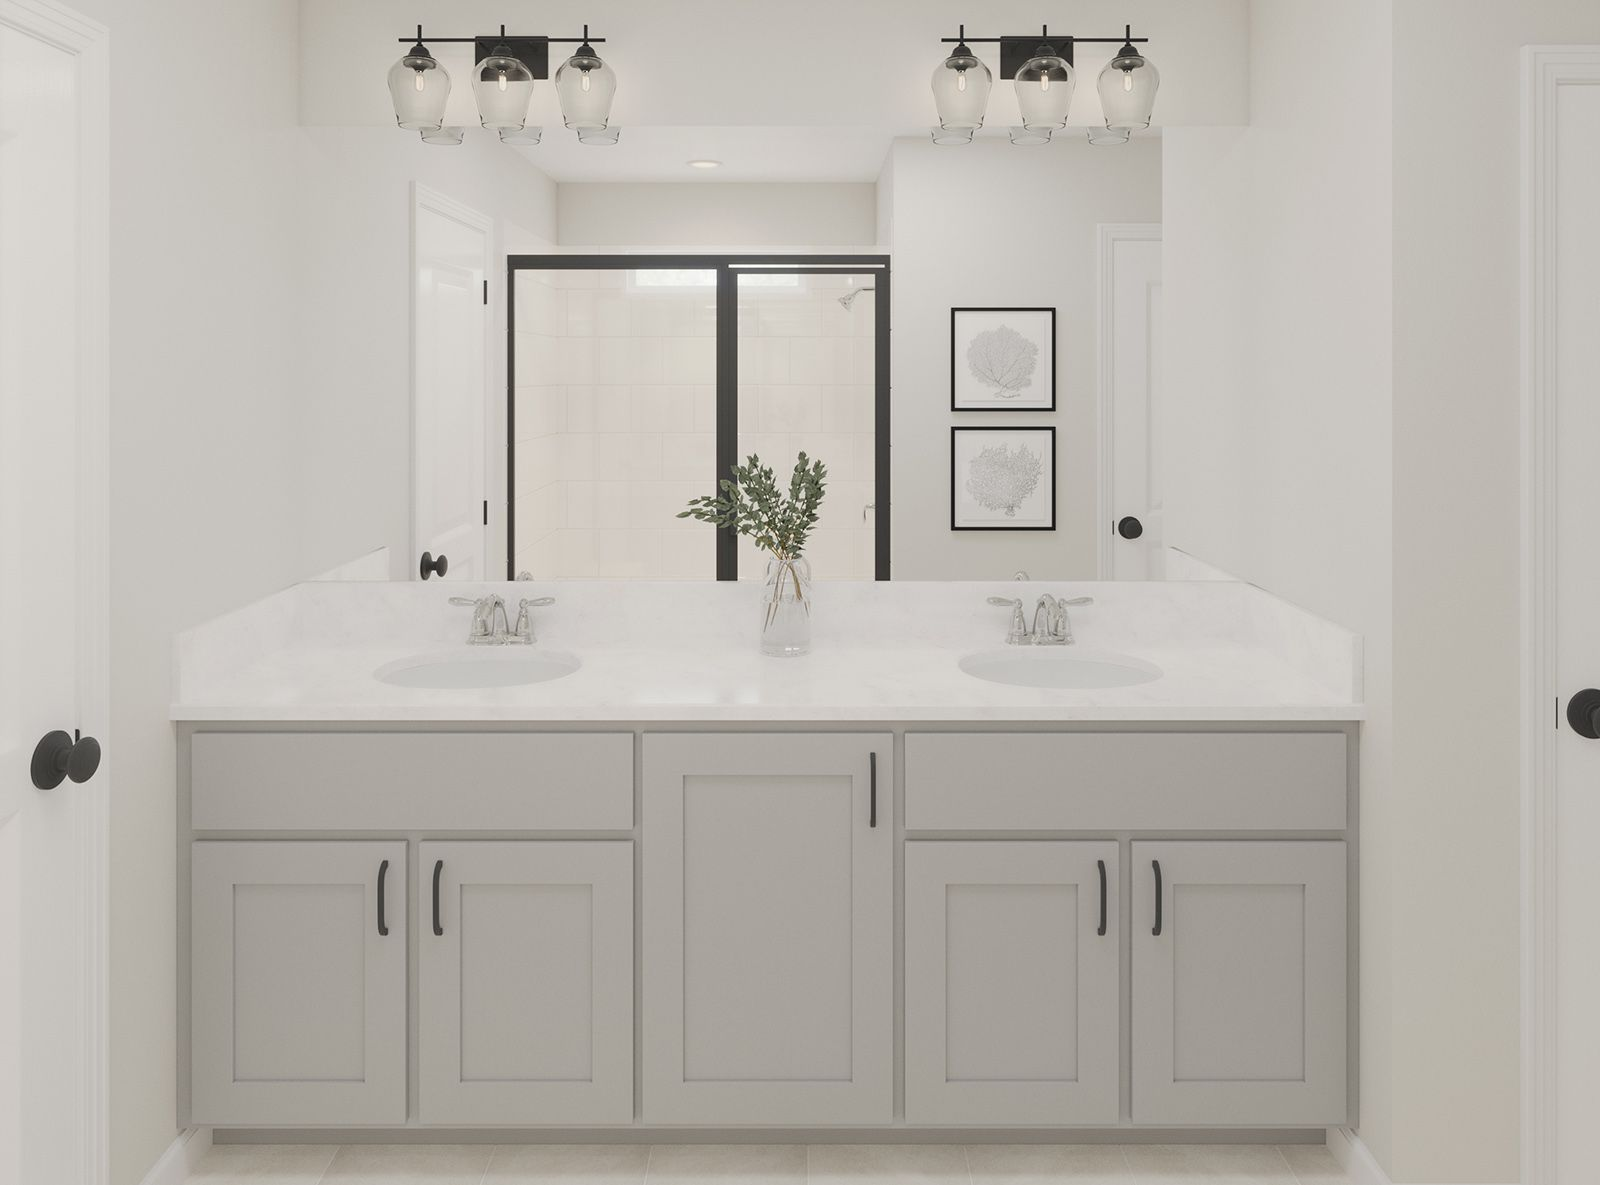 Bathroom featured in the Antigua By Ashton Woods in Charleston, SC